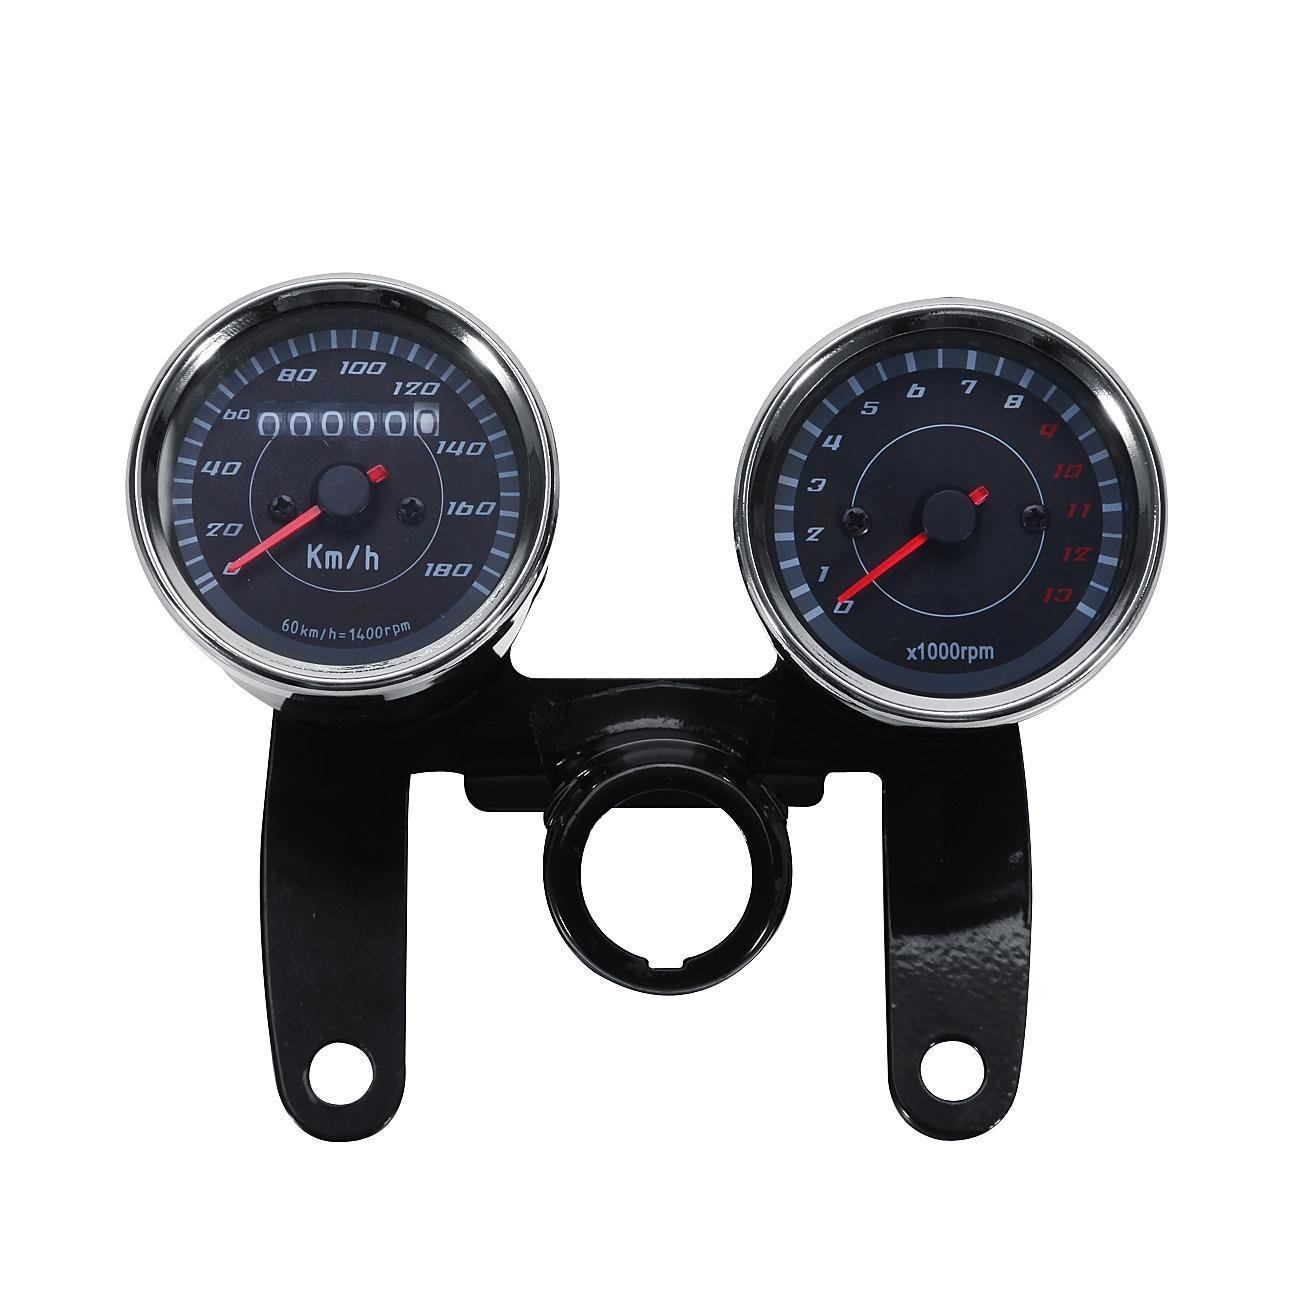 INNOGLOW Motorcycle Backlit Speedometer Tachometer Kit with Bracket,High Capacity Scale,Full-Sweep red Index,0-13000RPM,0-180km/h by INNOGLOW (Image #6)